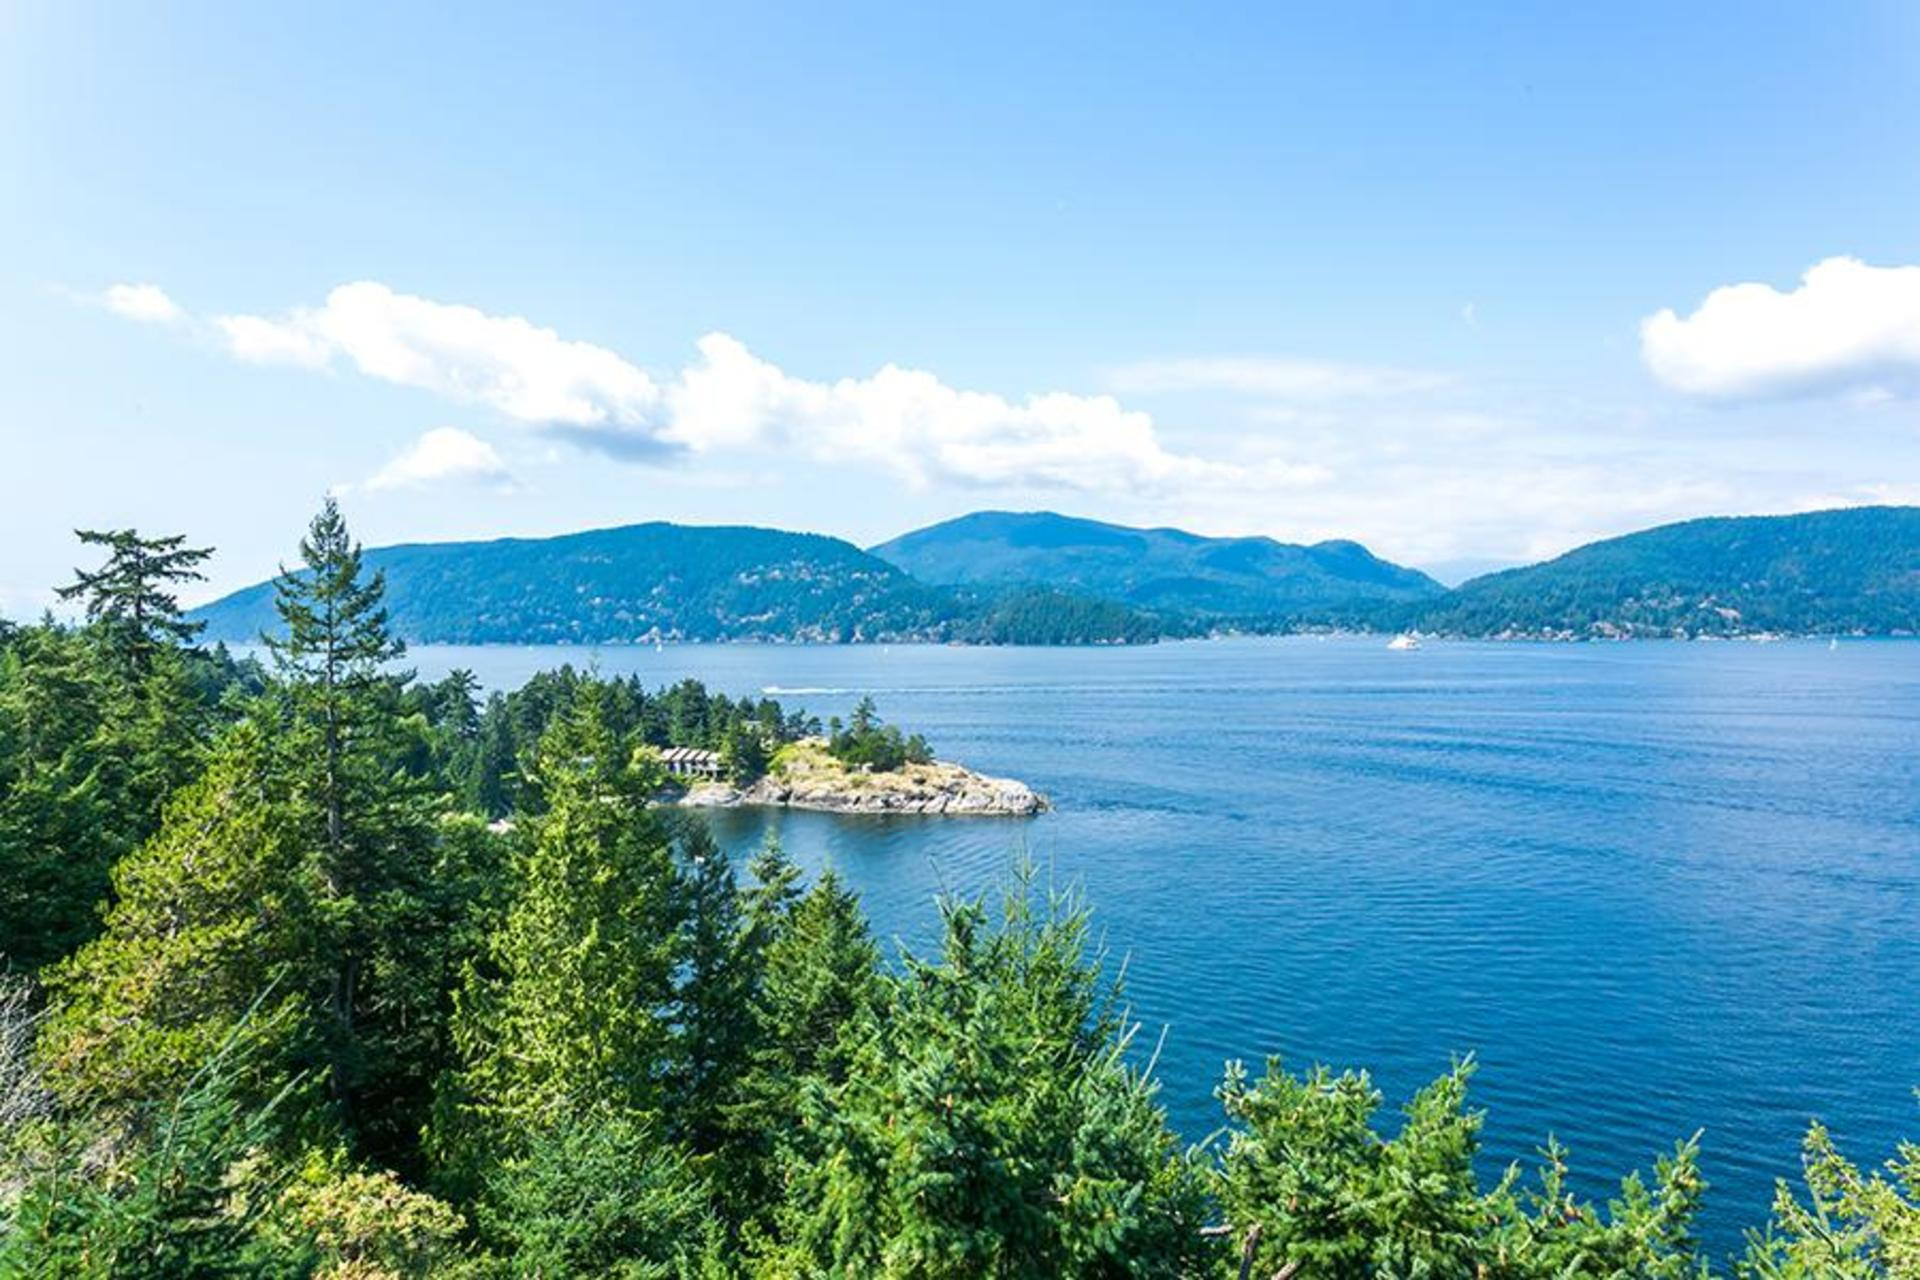 Ocean view at 6995 Hycroft, Whytecliff, West Vancouver